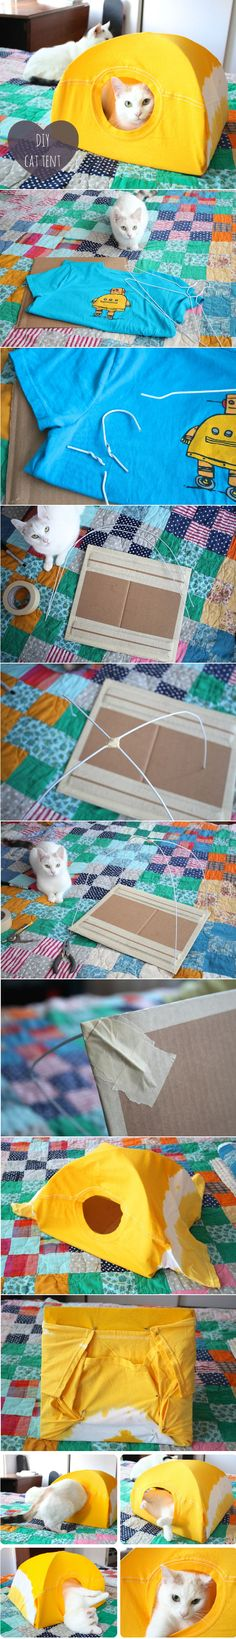 Creative Idea For Your Cat – DIY Cat Tent